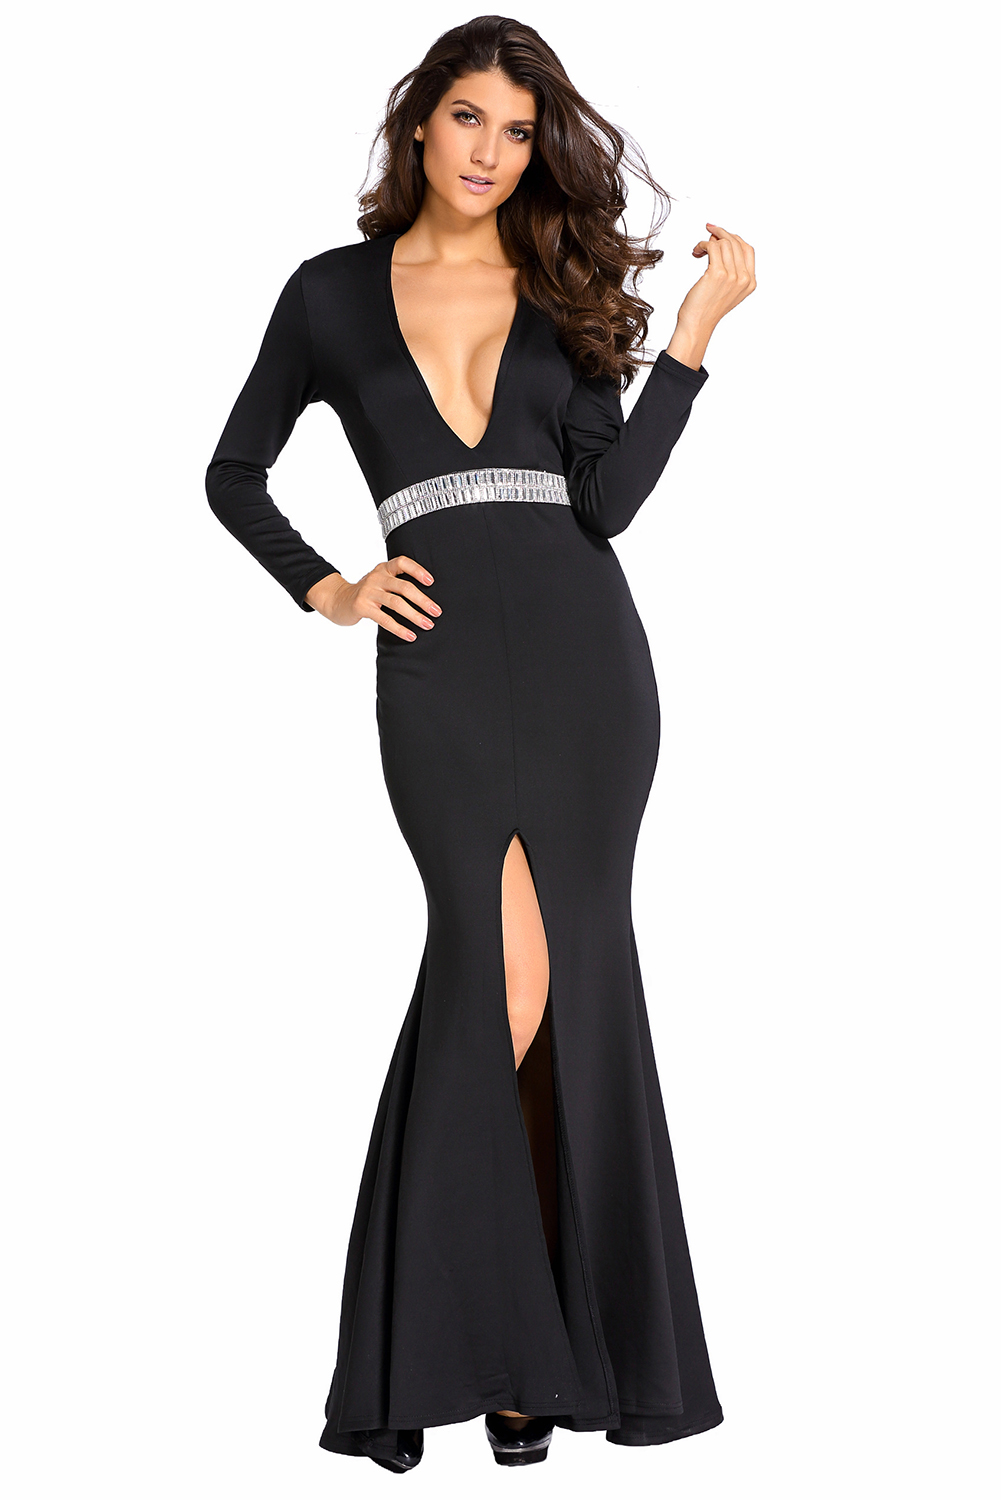 Black Gown With Silver Shoes